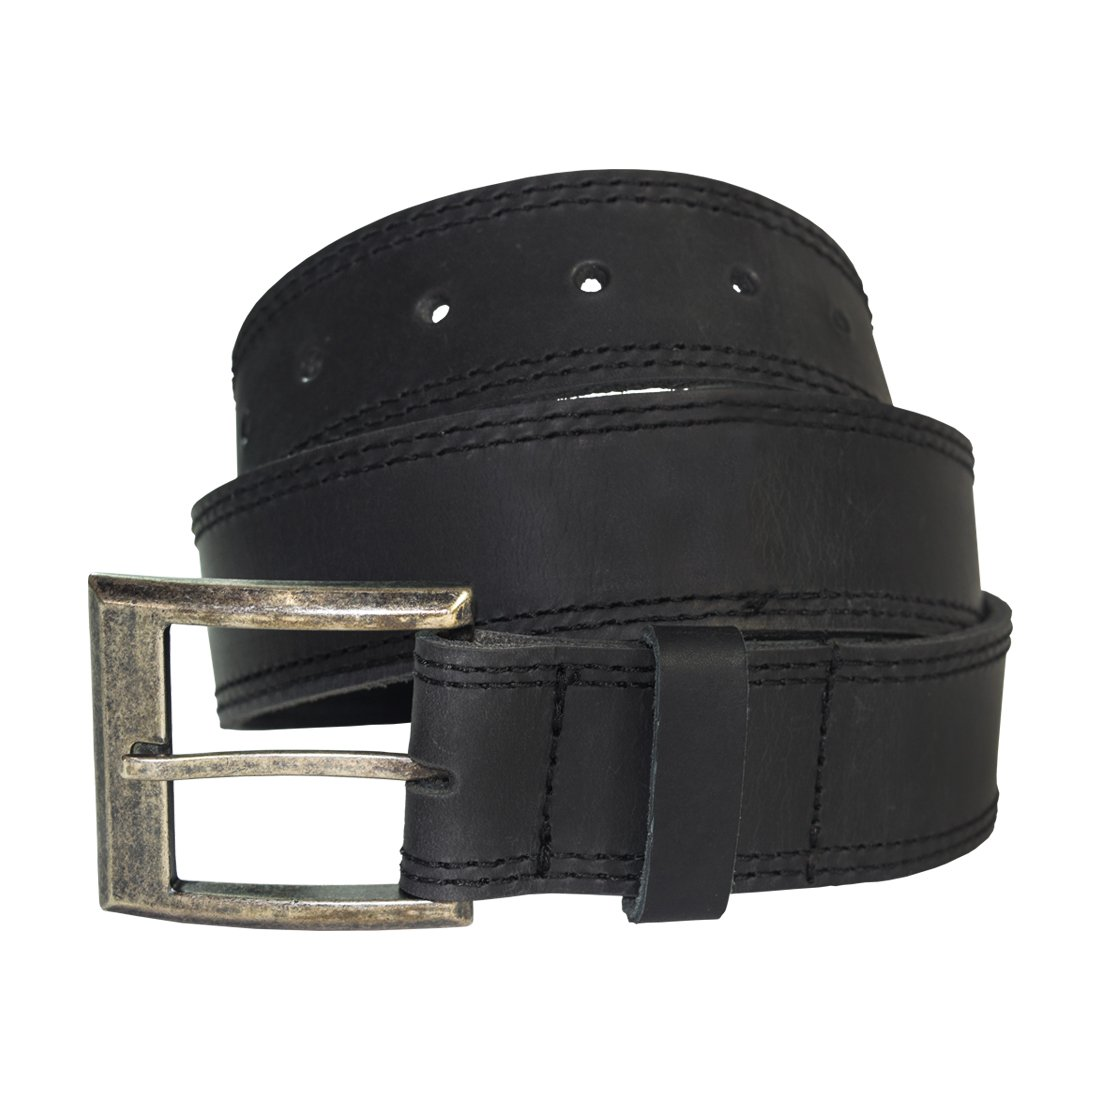 Men's Two Row Stitch Leather Belt Handmade by Hide & Drink :: Charcoal Black (Size 32)